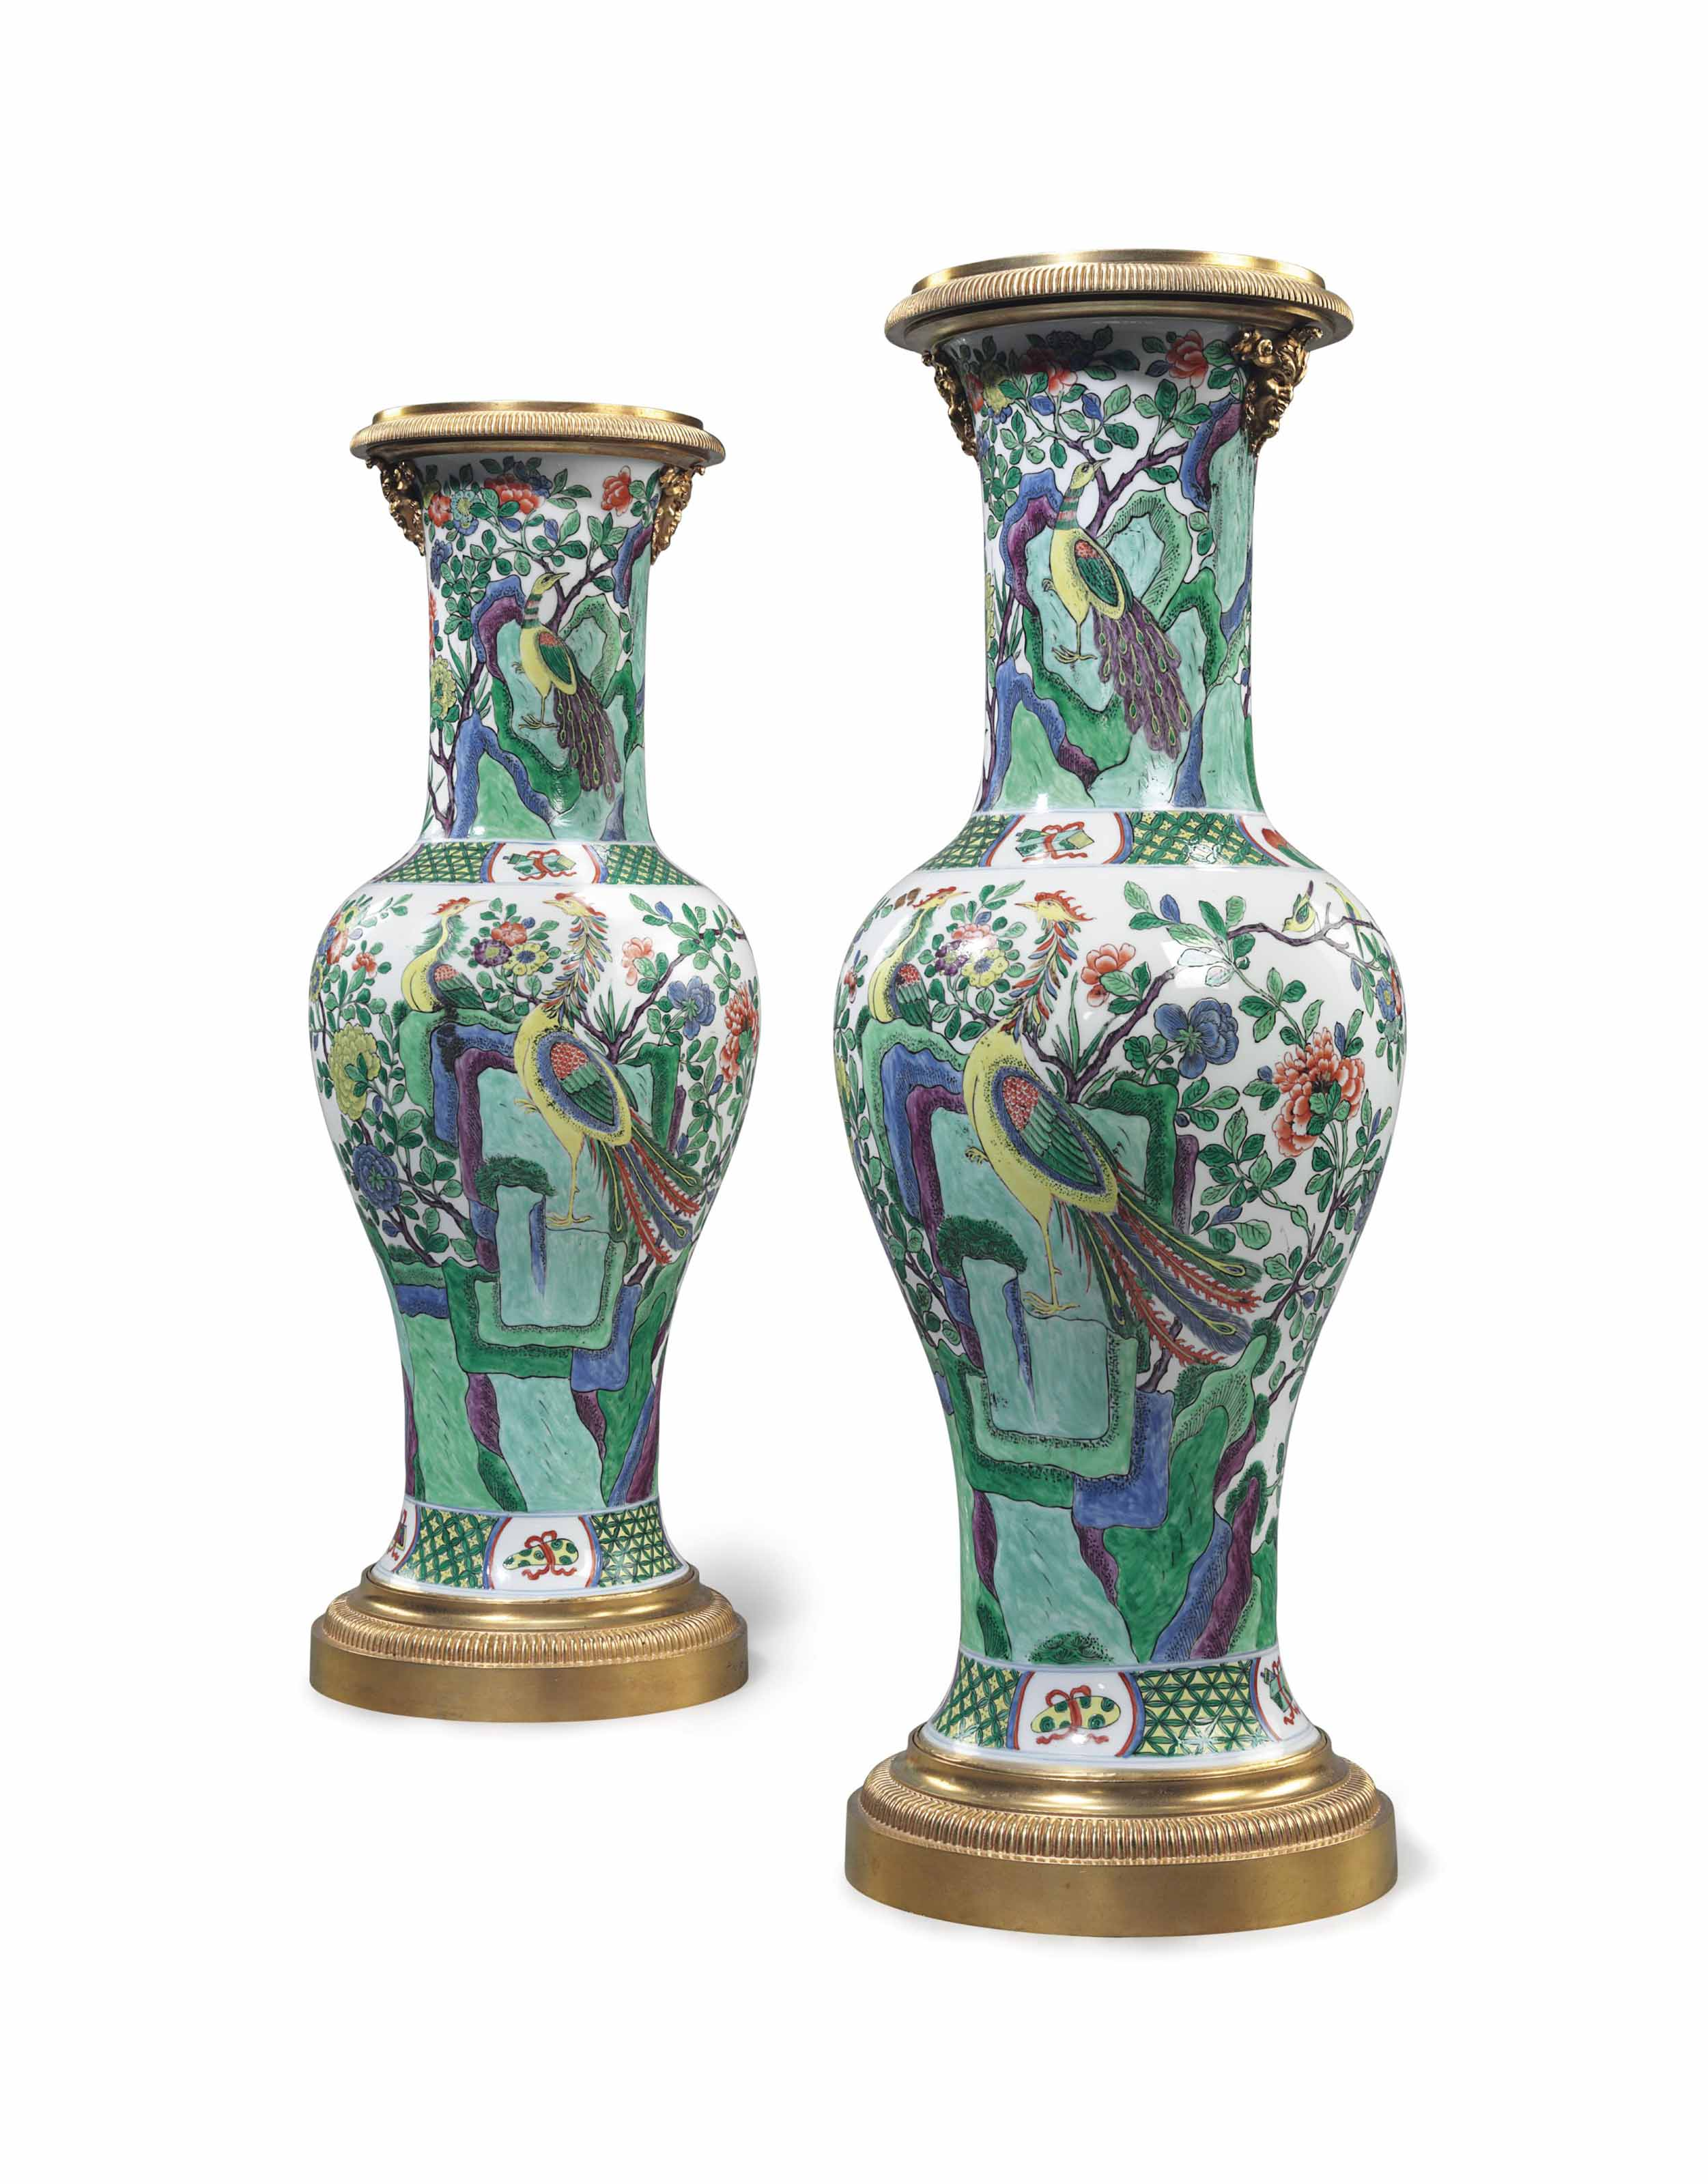 A LARGE PAIR OF ORMOLU-MOUNTED SAMSON PORCELAIN VASES